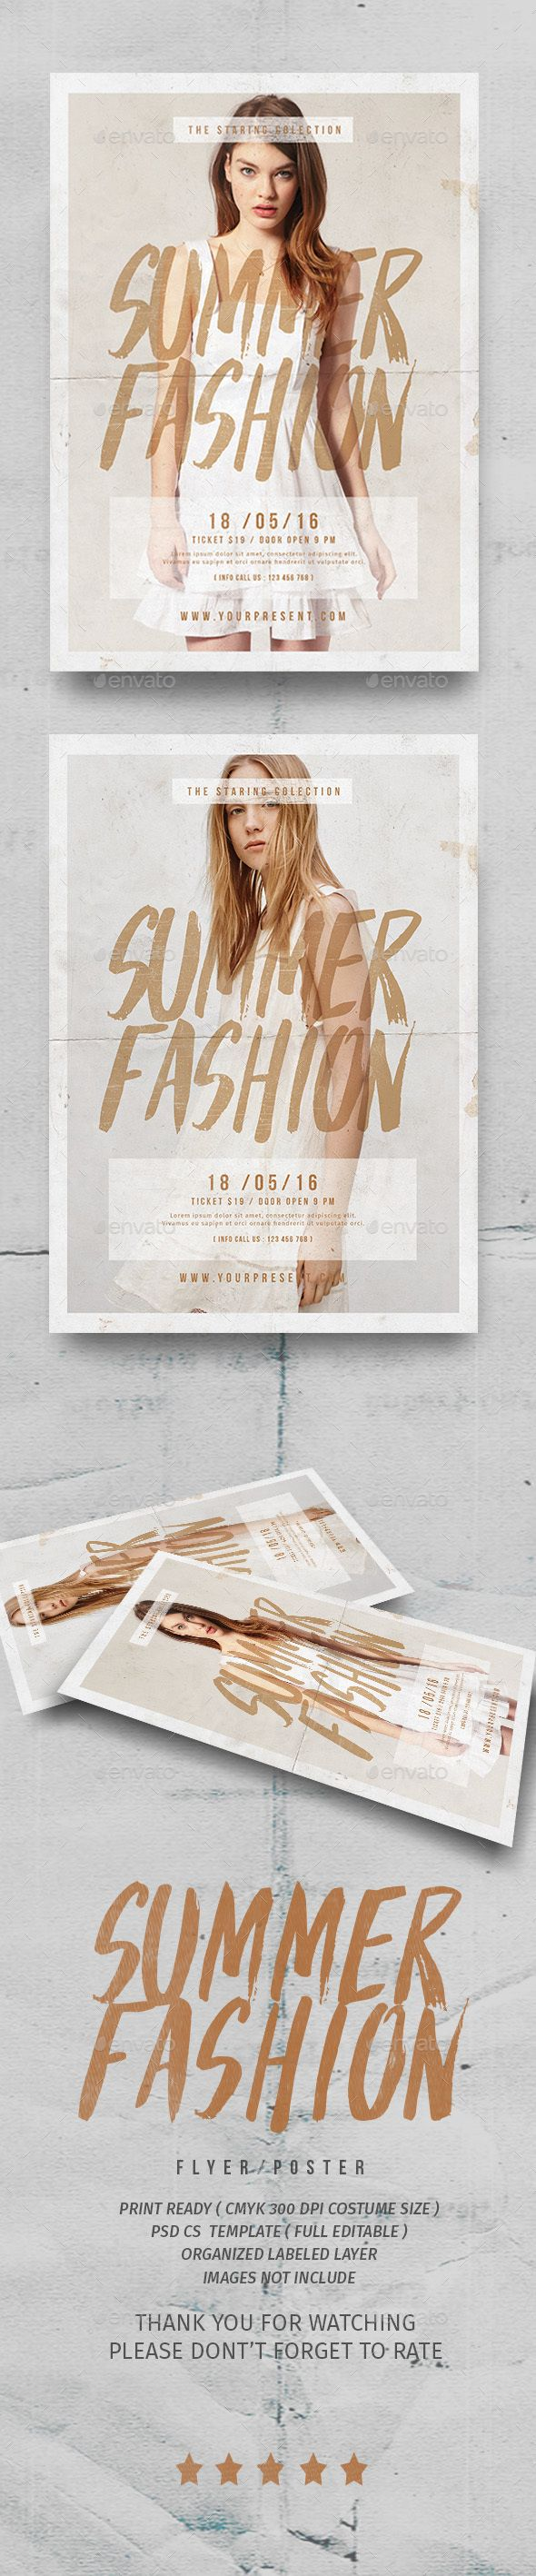 Summer Fashion Flyer Template PSD. Download here: http://graphicriver.net/item/summer-fashion-flyer/15796515?ref=ksioks